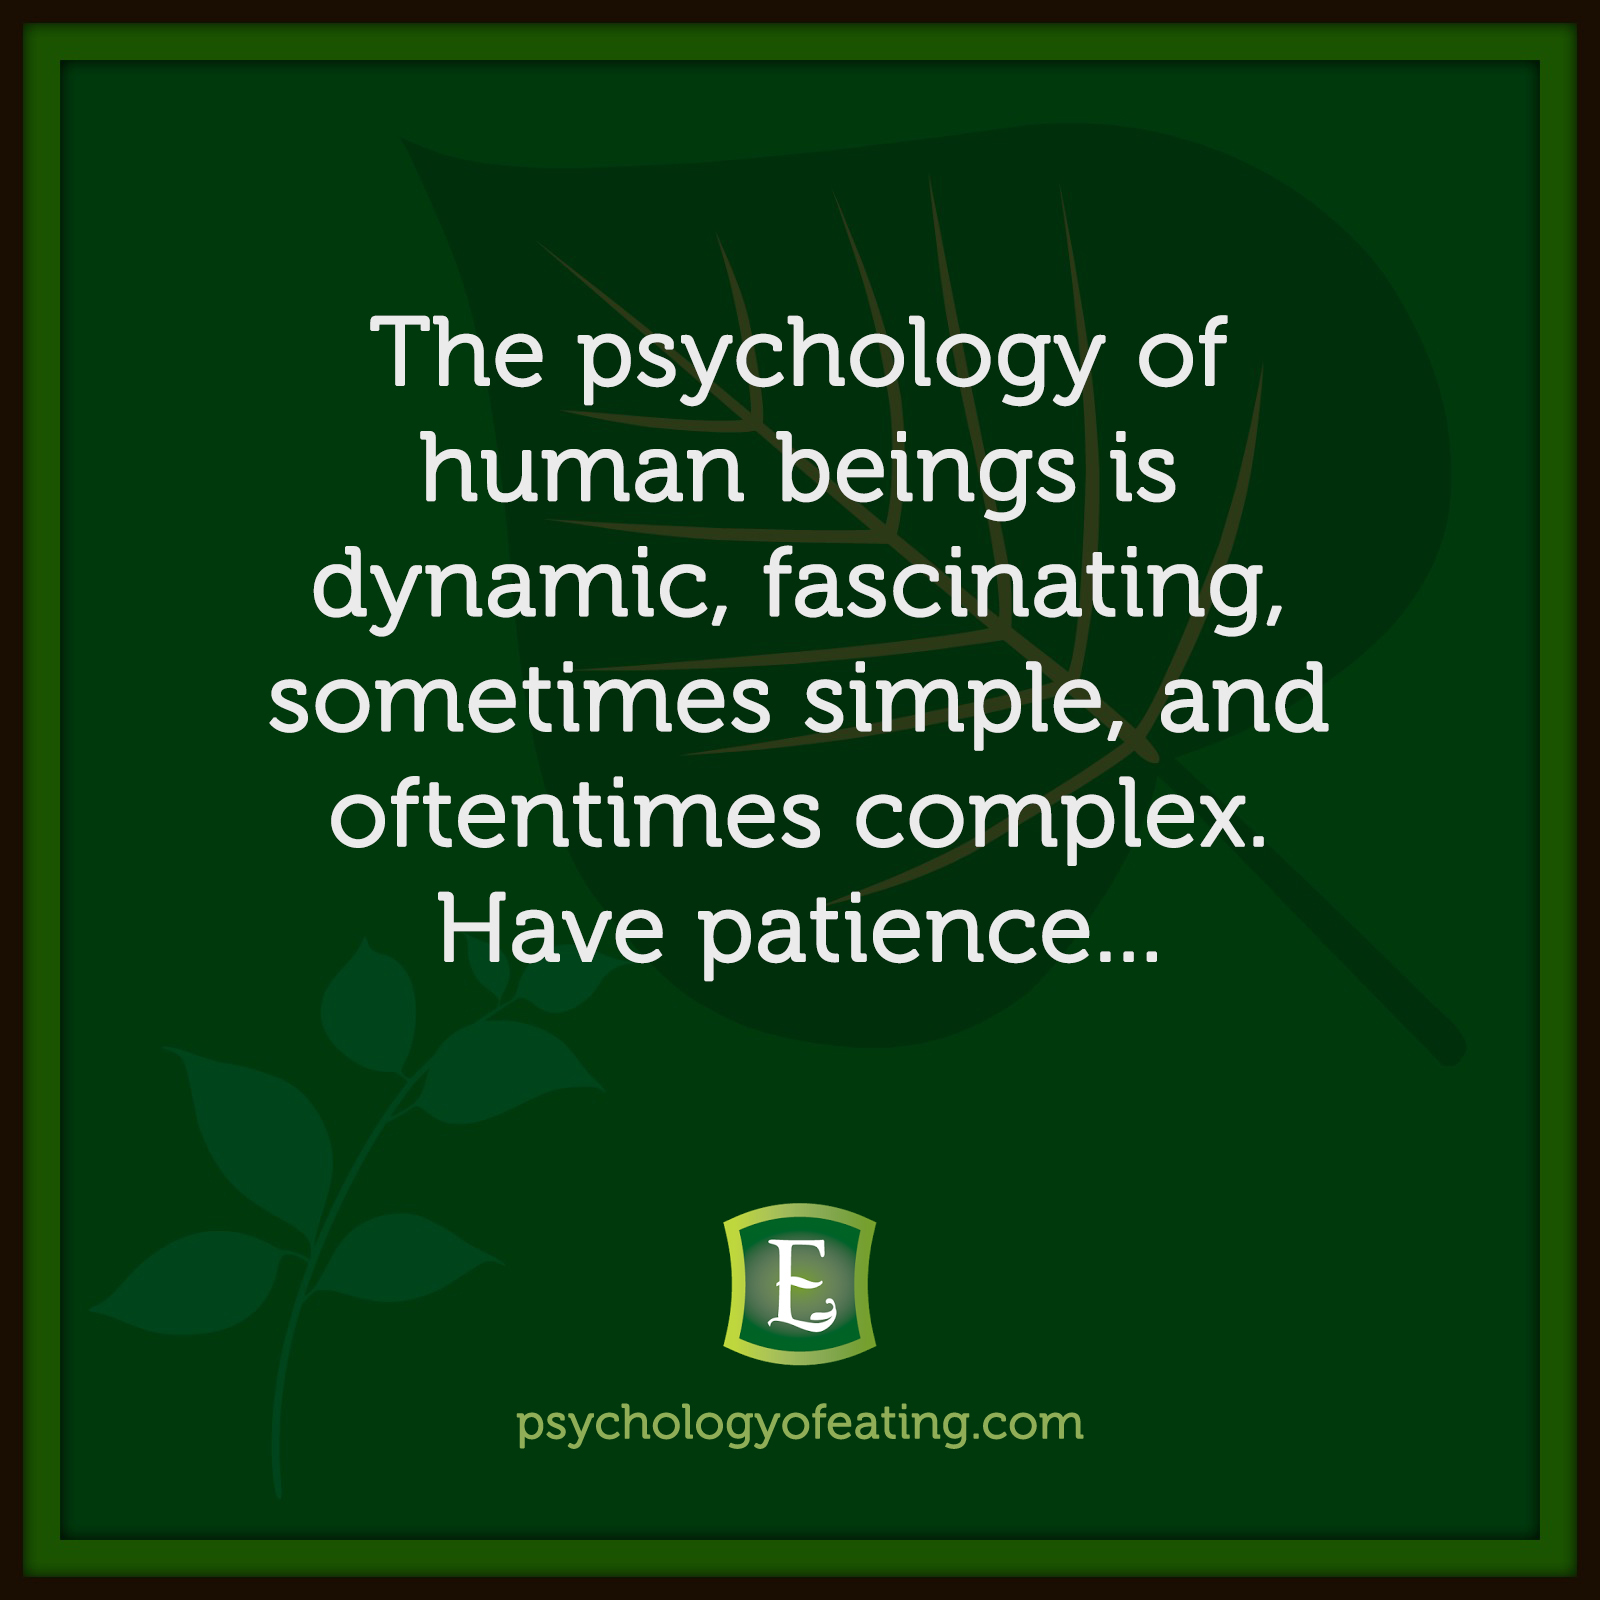 The psychology of human beings is dynamic, fascinating, sometimes simple, and oftentimes complex. Have patience… #health #nutrition #eatingpsychology #IPE